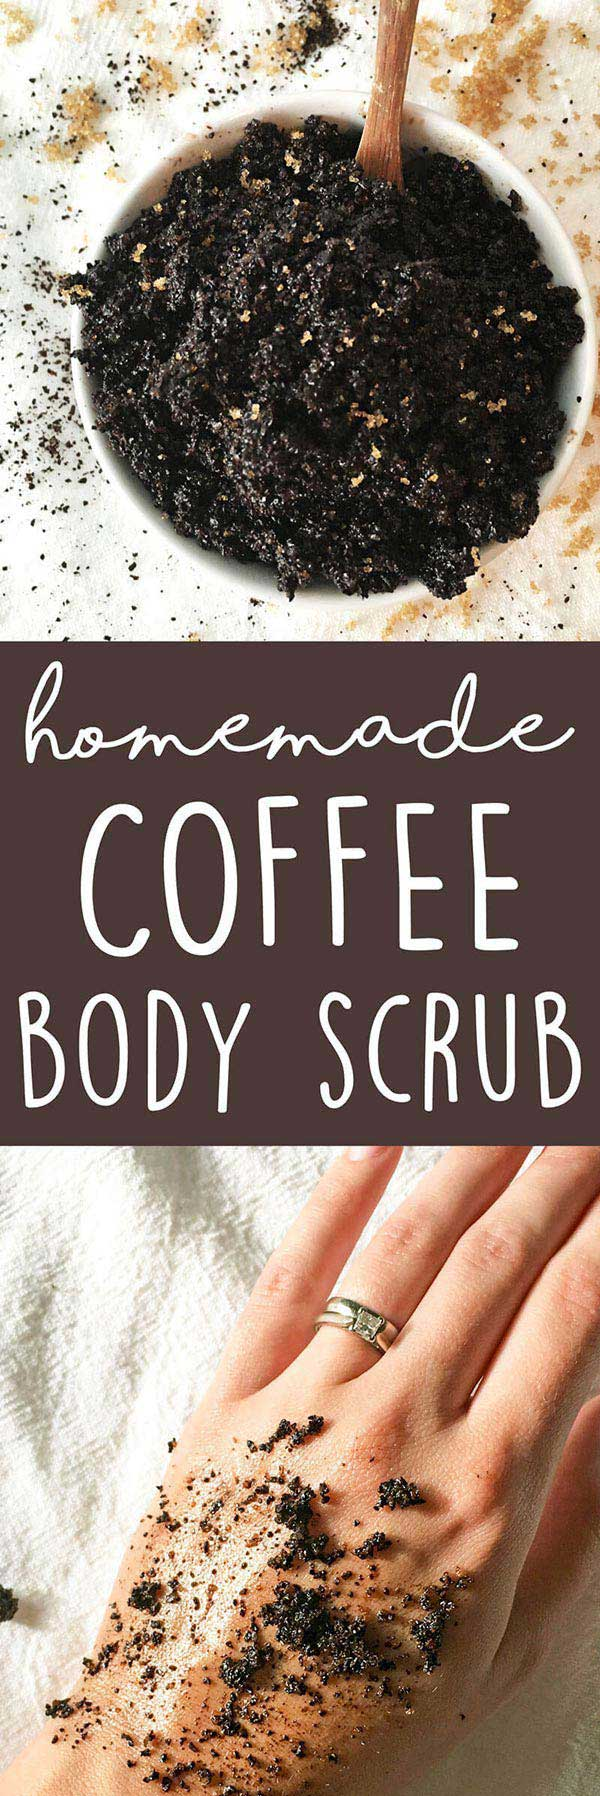 DIY Coffee Body Scrub - this 3-ingredient homemade body scrub recipe is great for dry skin & exfoliating. LOVE it! | www.www.karissasvegankitchen.com - Coffee Scrub